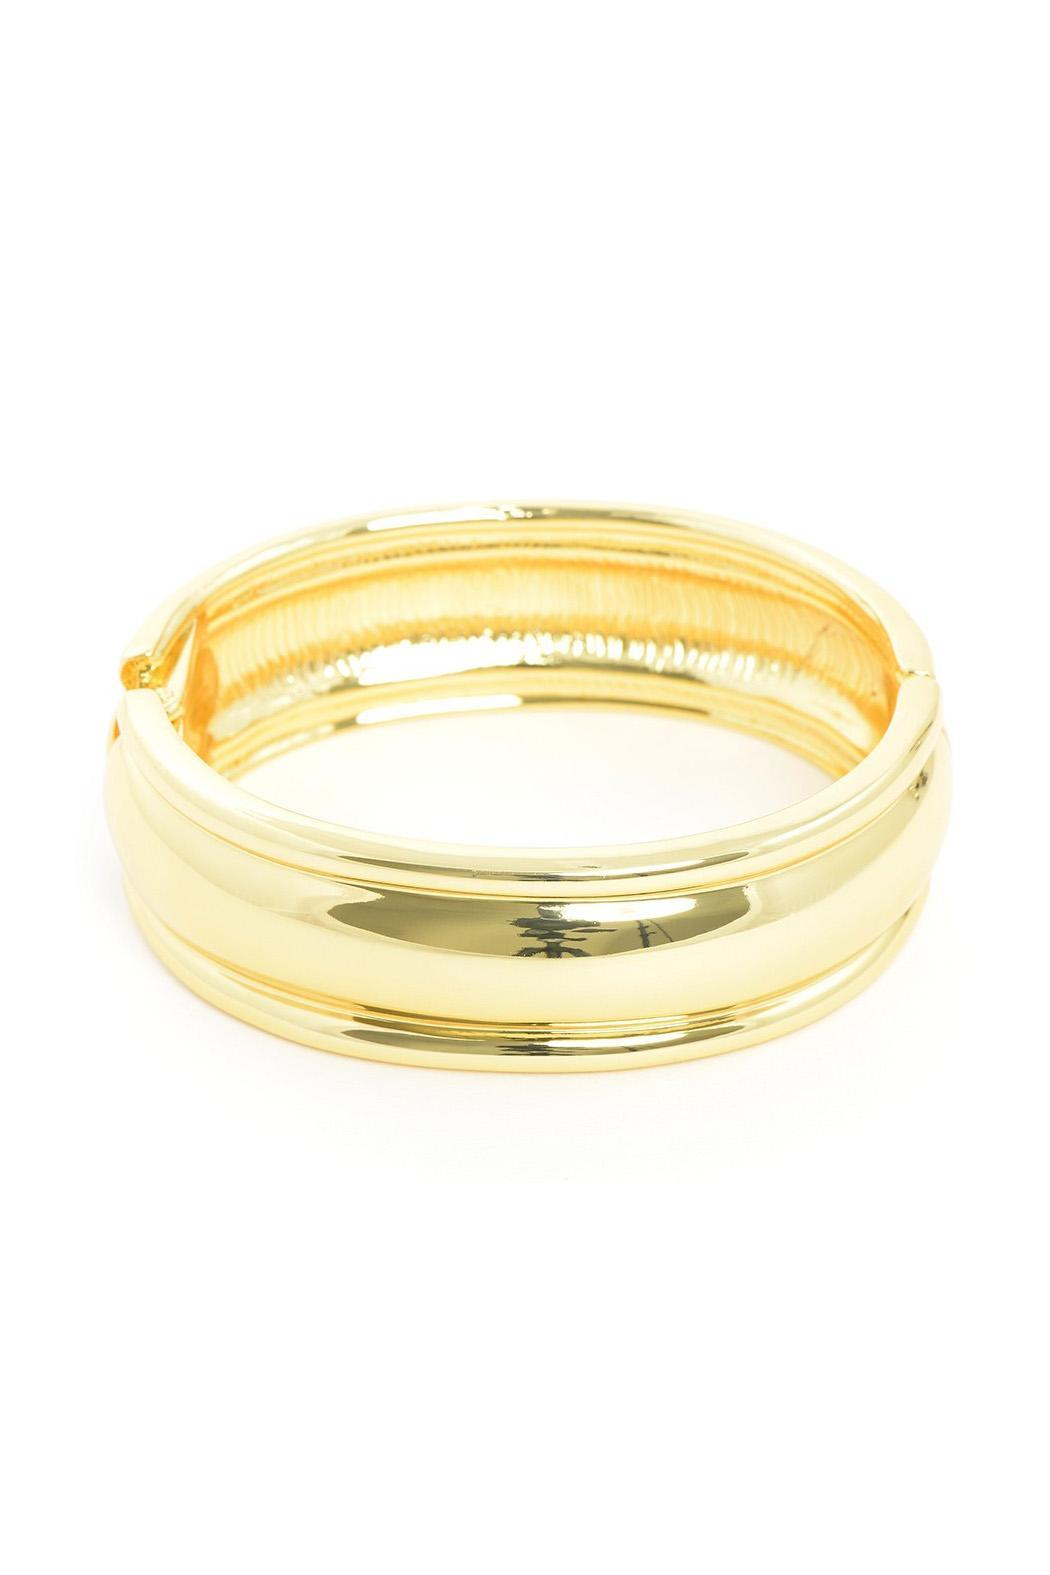 Wild Lilies Jewelry  Gold Bangle Bracelet - Front Full Image